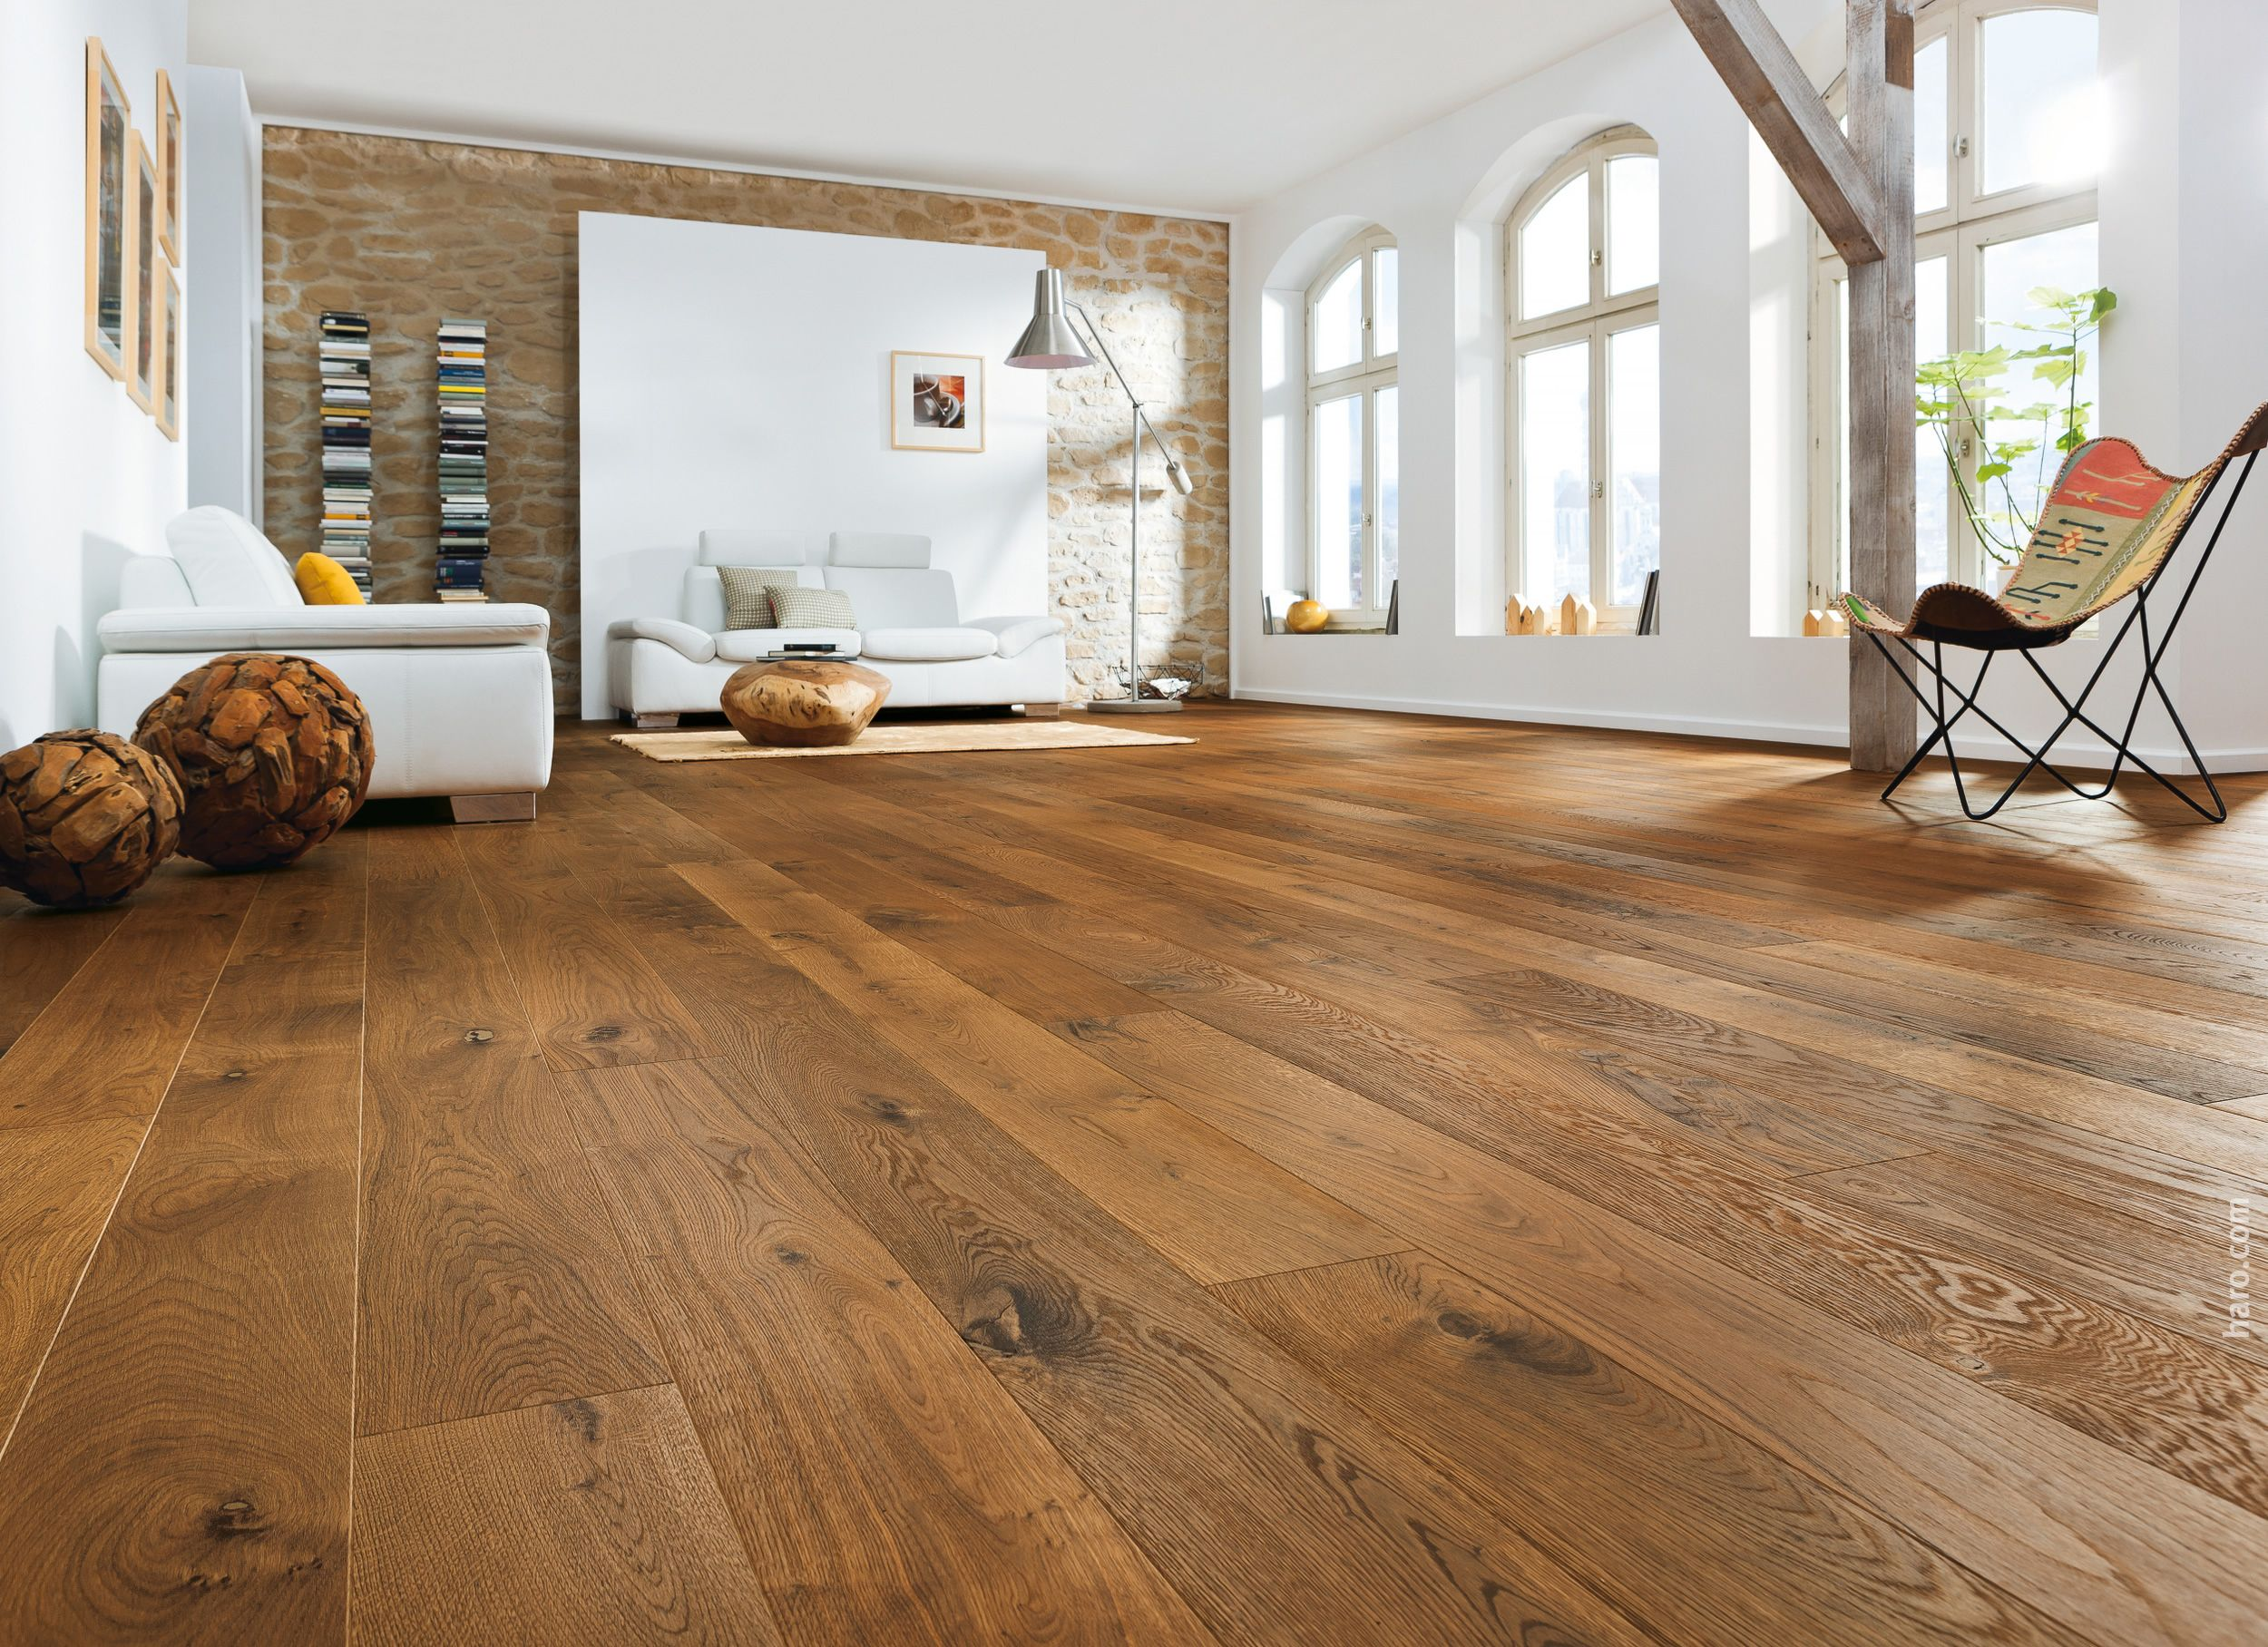 for how floors images oak of concrete dream pergo laminate inspirational xd basement collection flooring install over home attachment boardwalk idea to